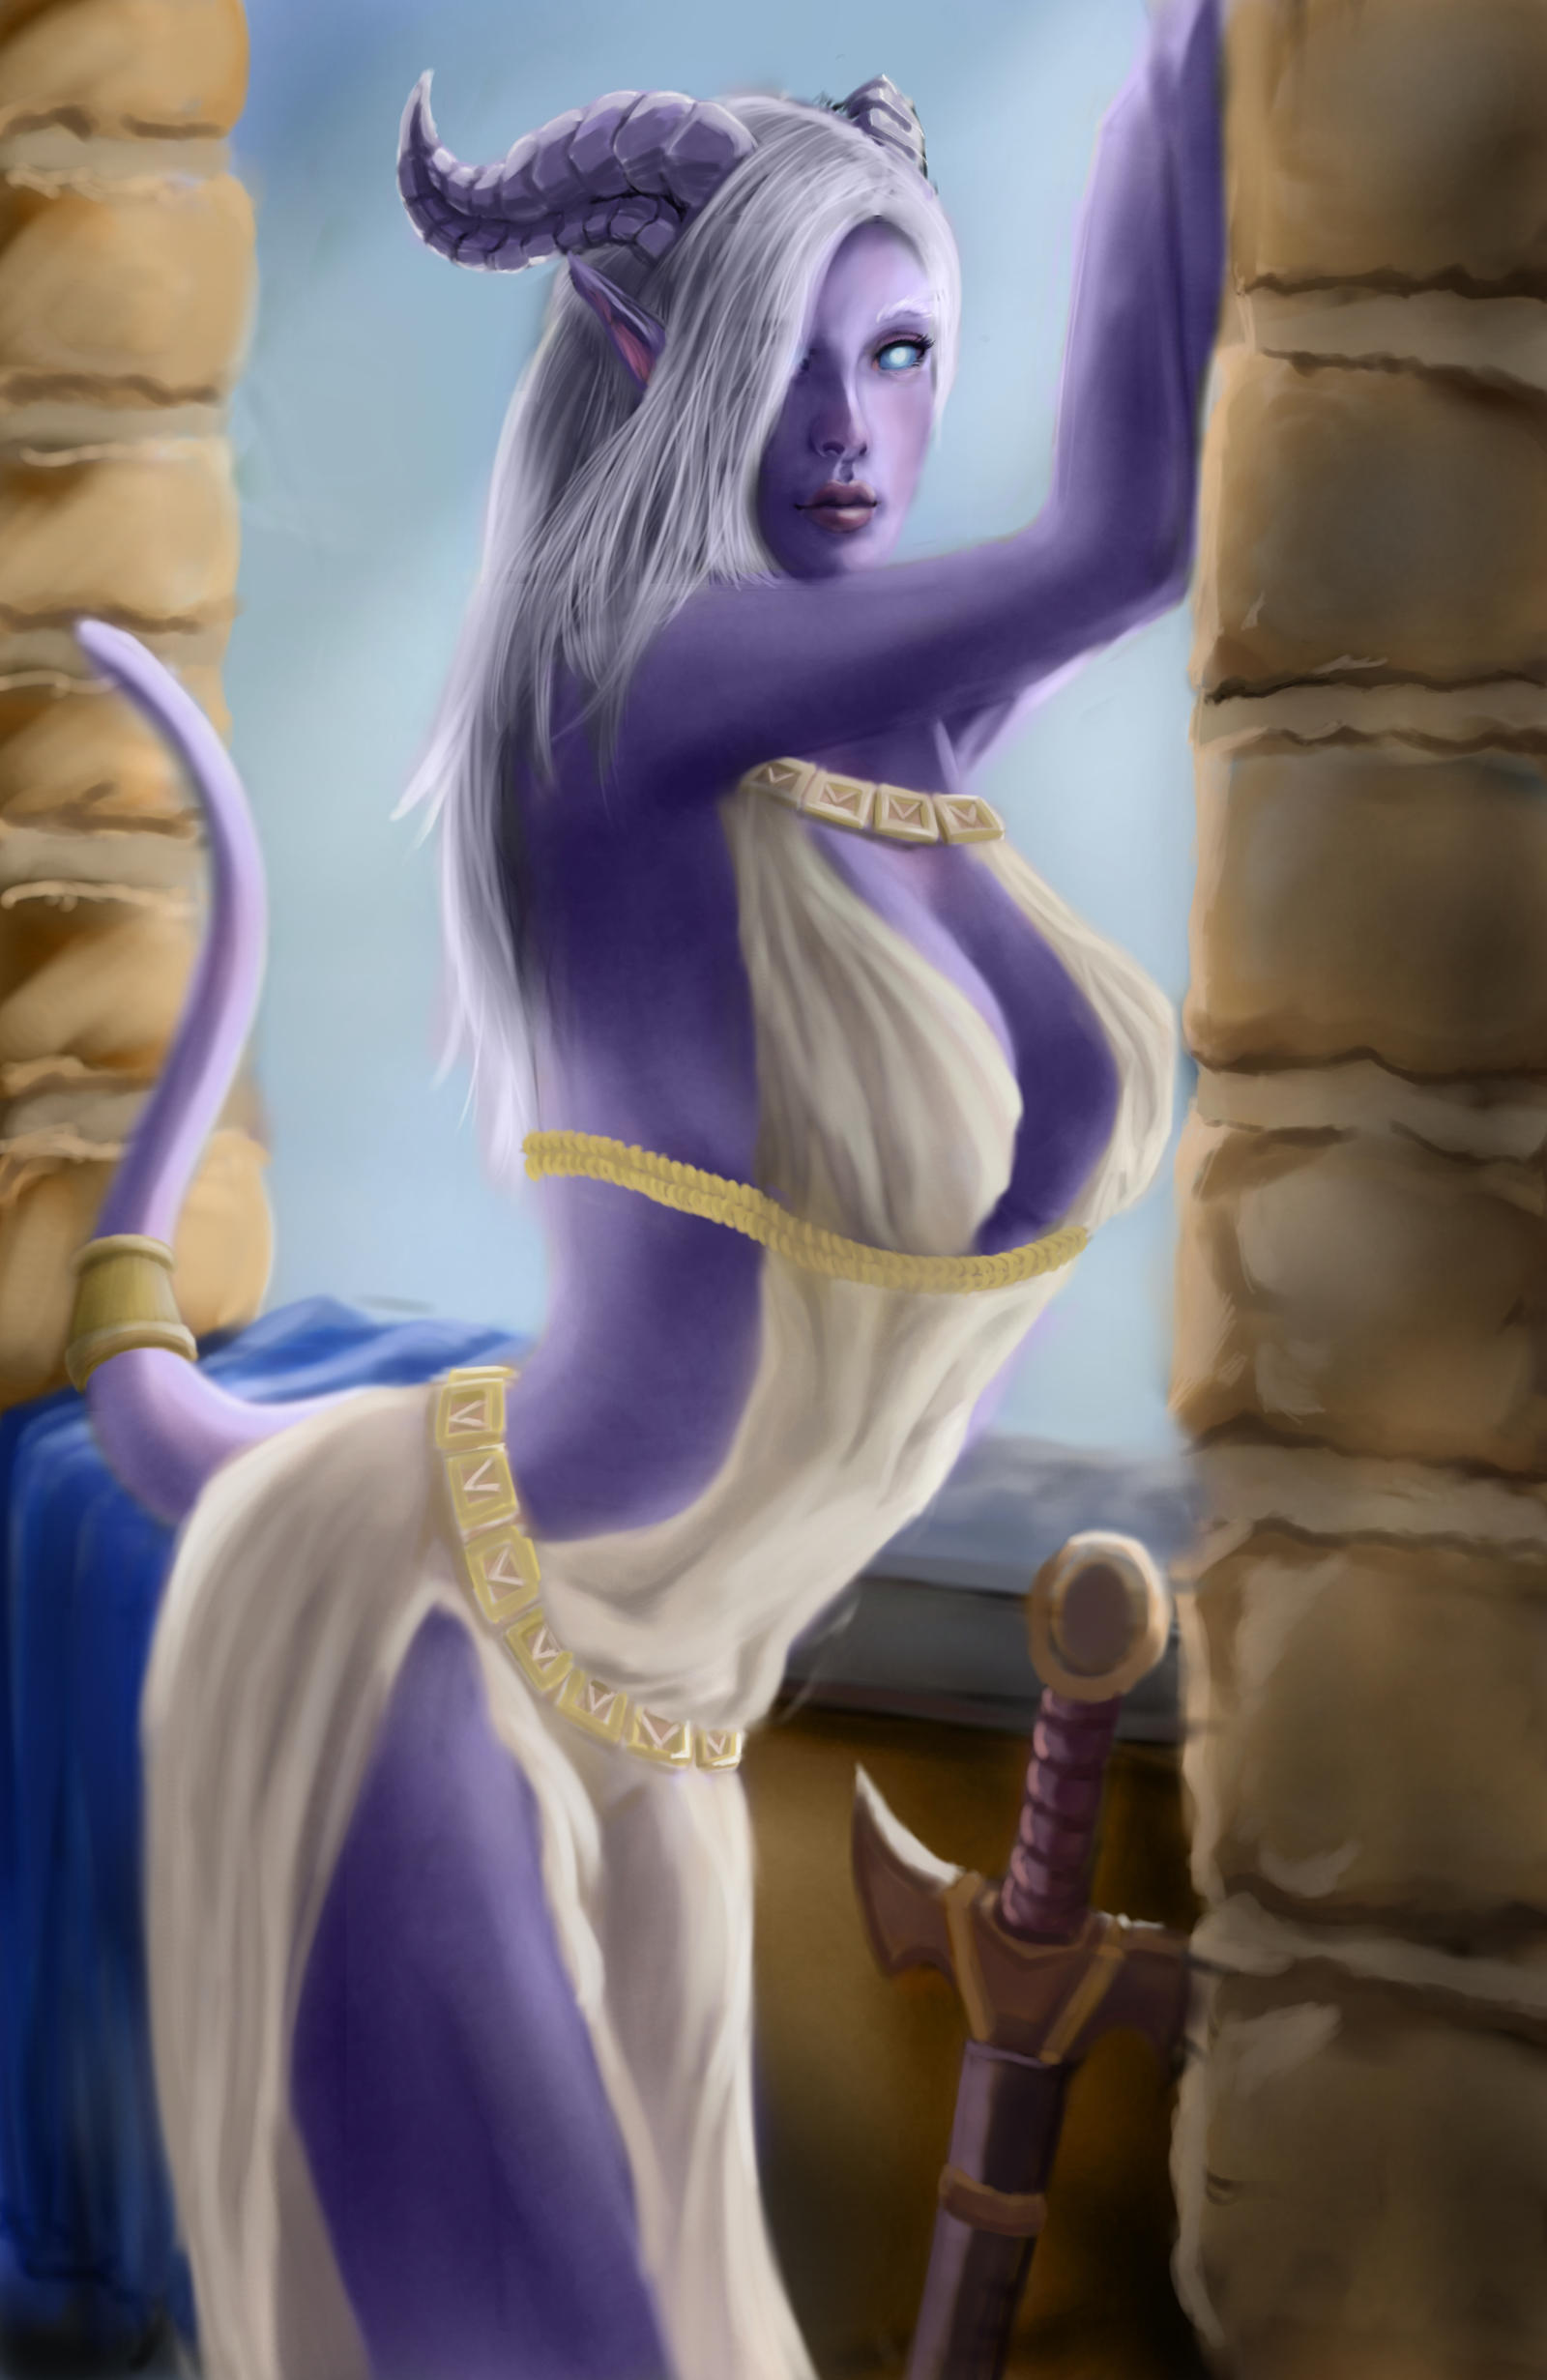 World of warcraft from draenei girls porno bad beauties